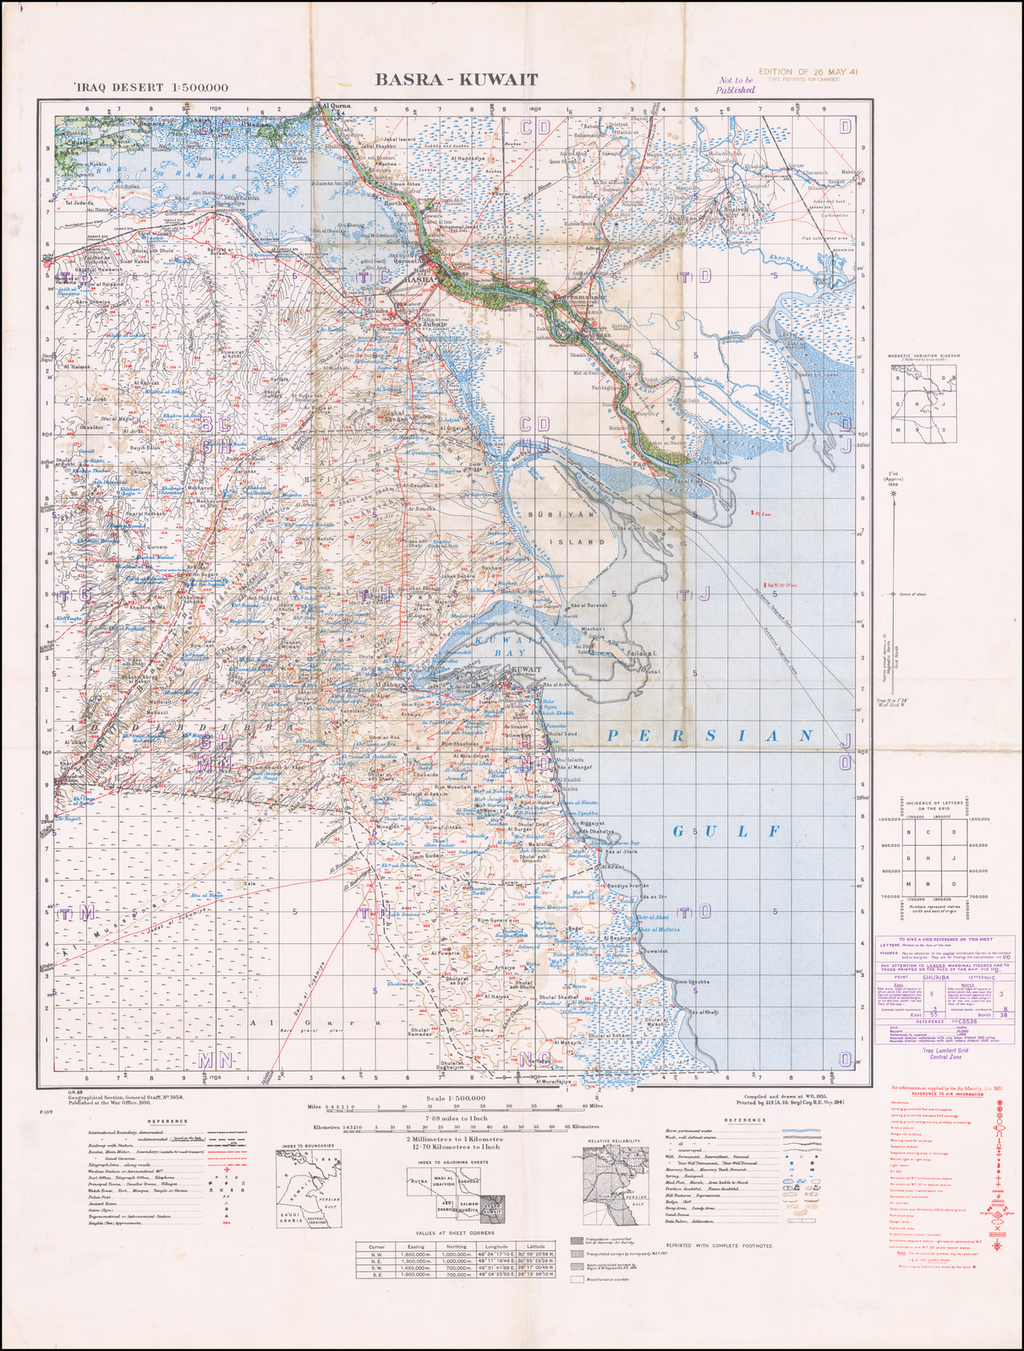 Basra-Kuwait (Edition of 26 May 41) By Geographical Section, War Office (UK)